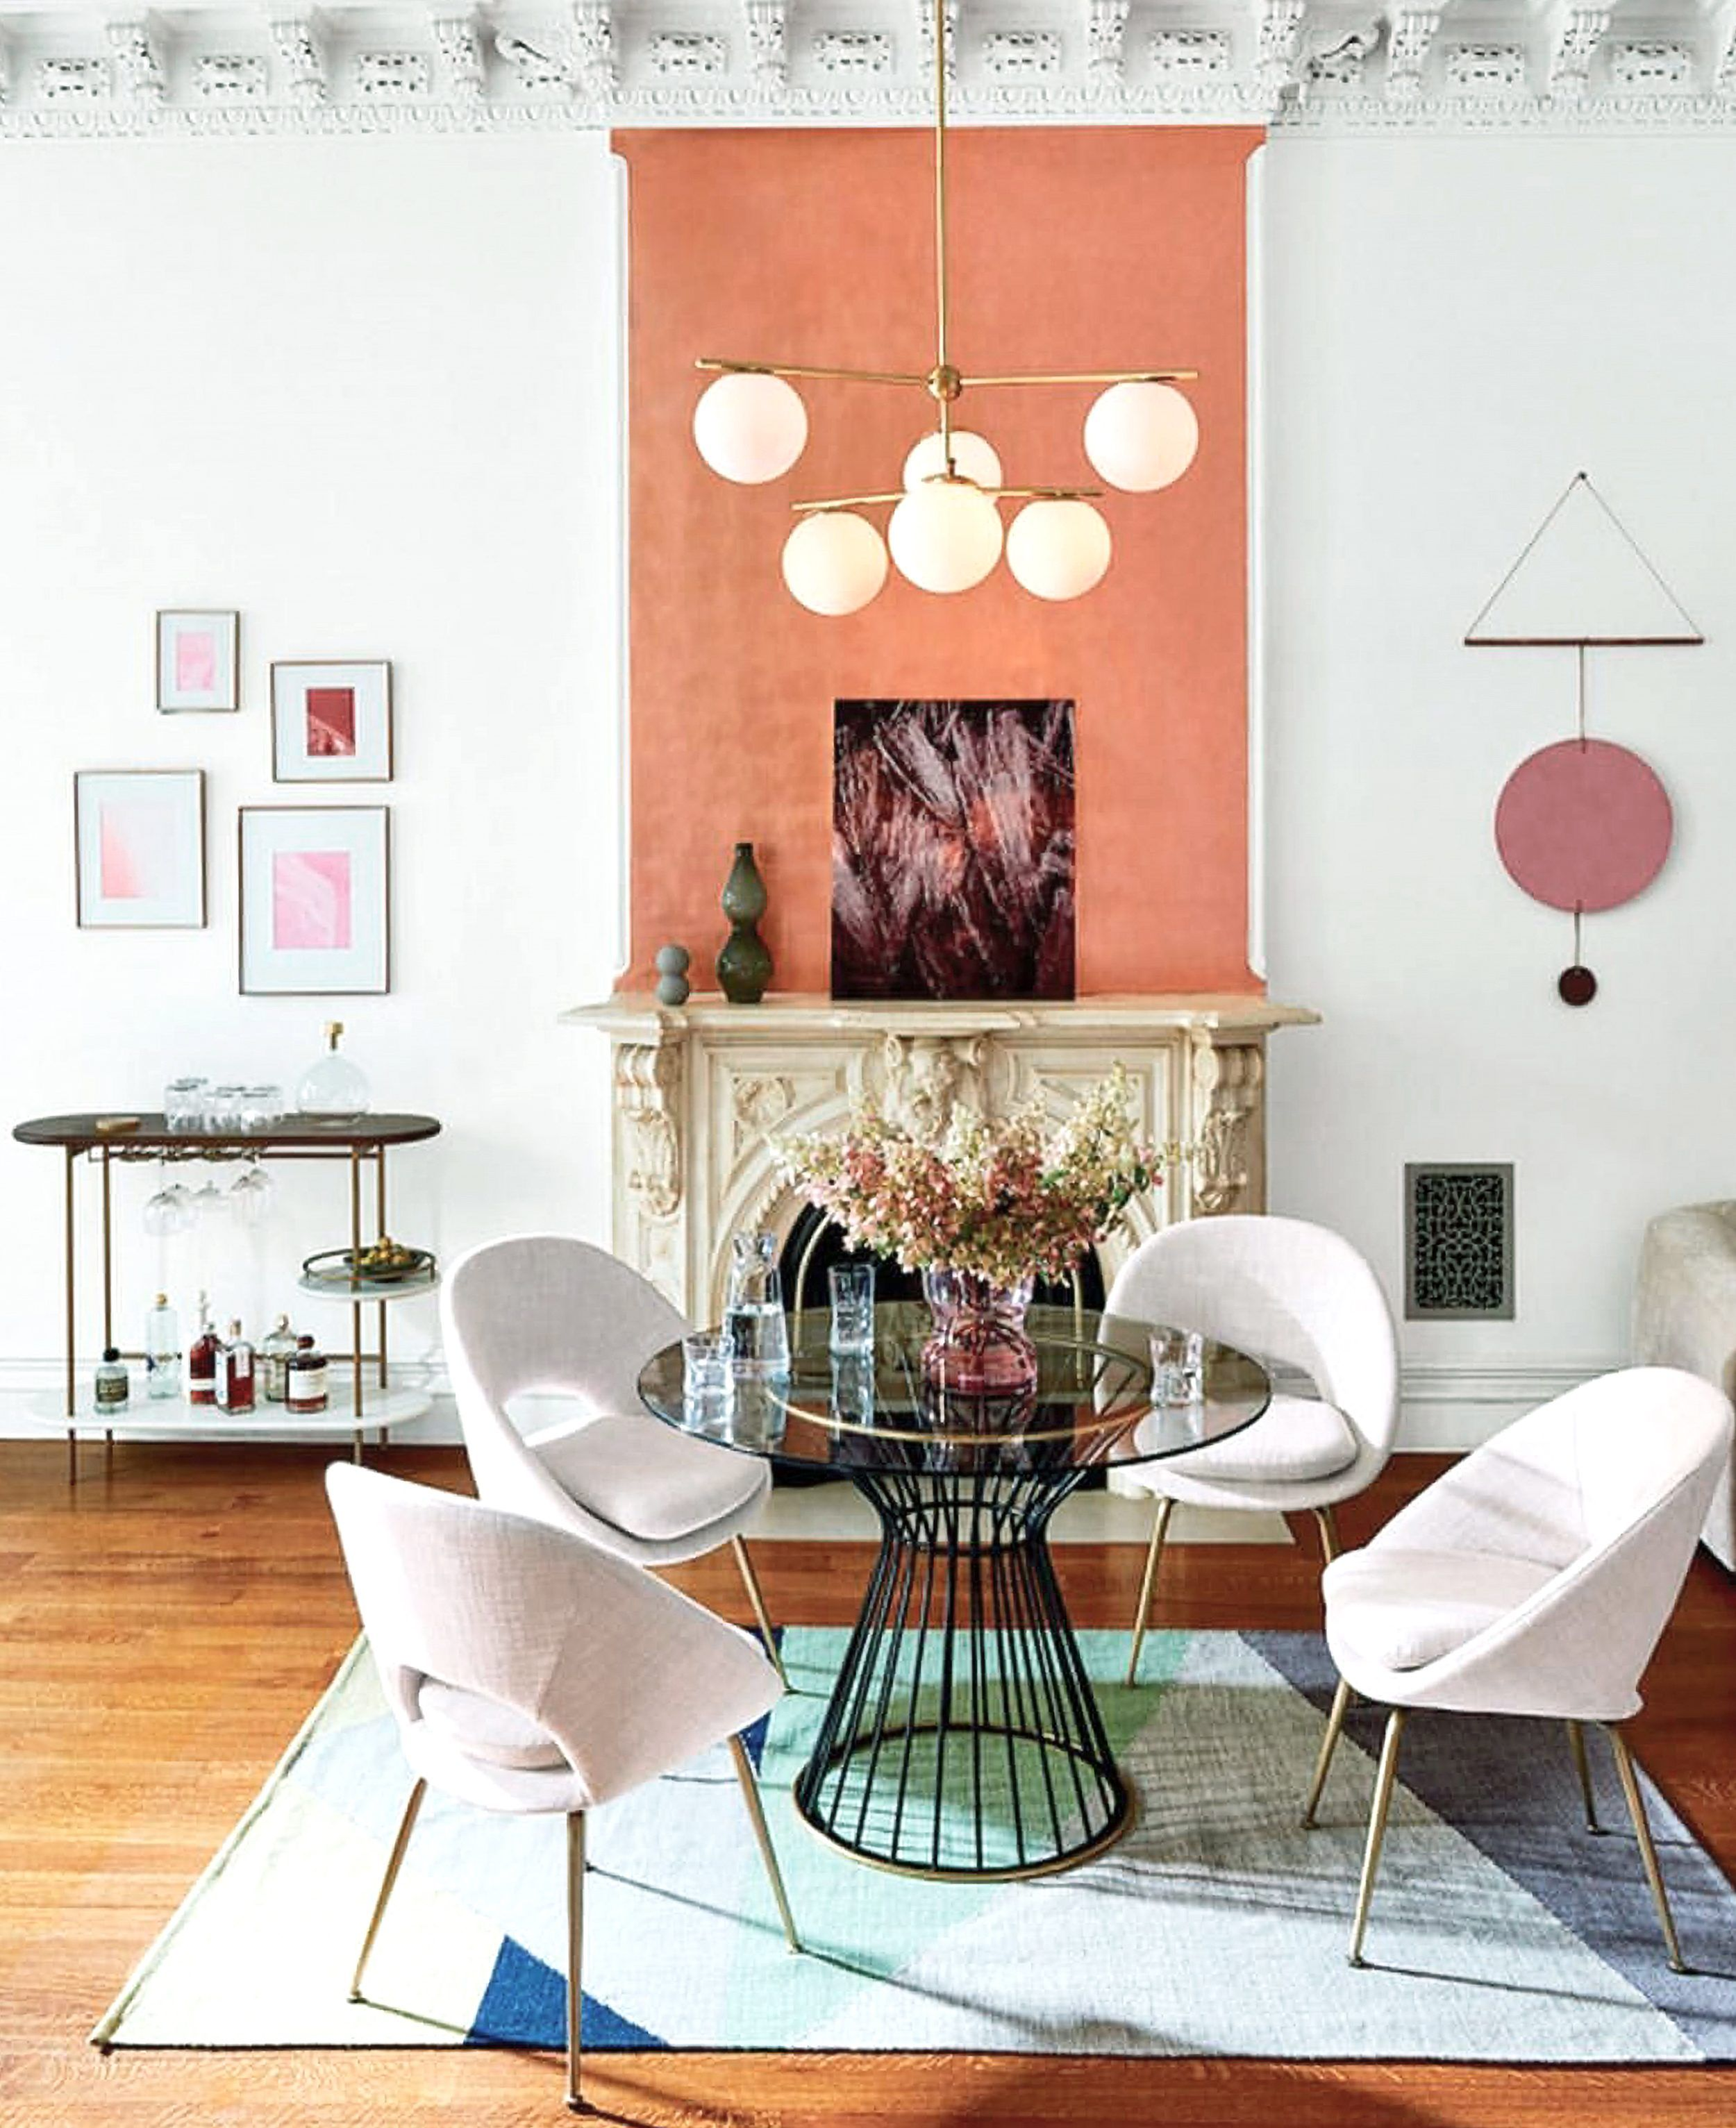 West elm new product catalog home style also we need to talk about lilac as  decor trend by rh pinterest